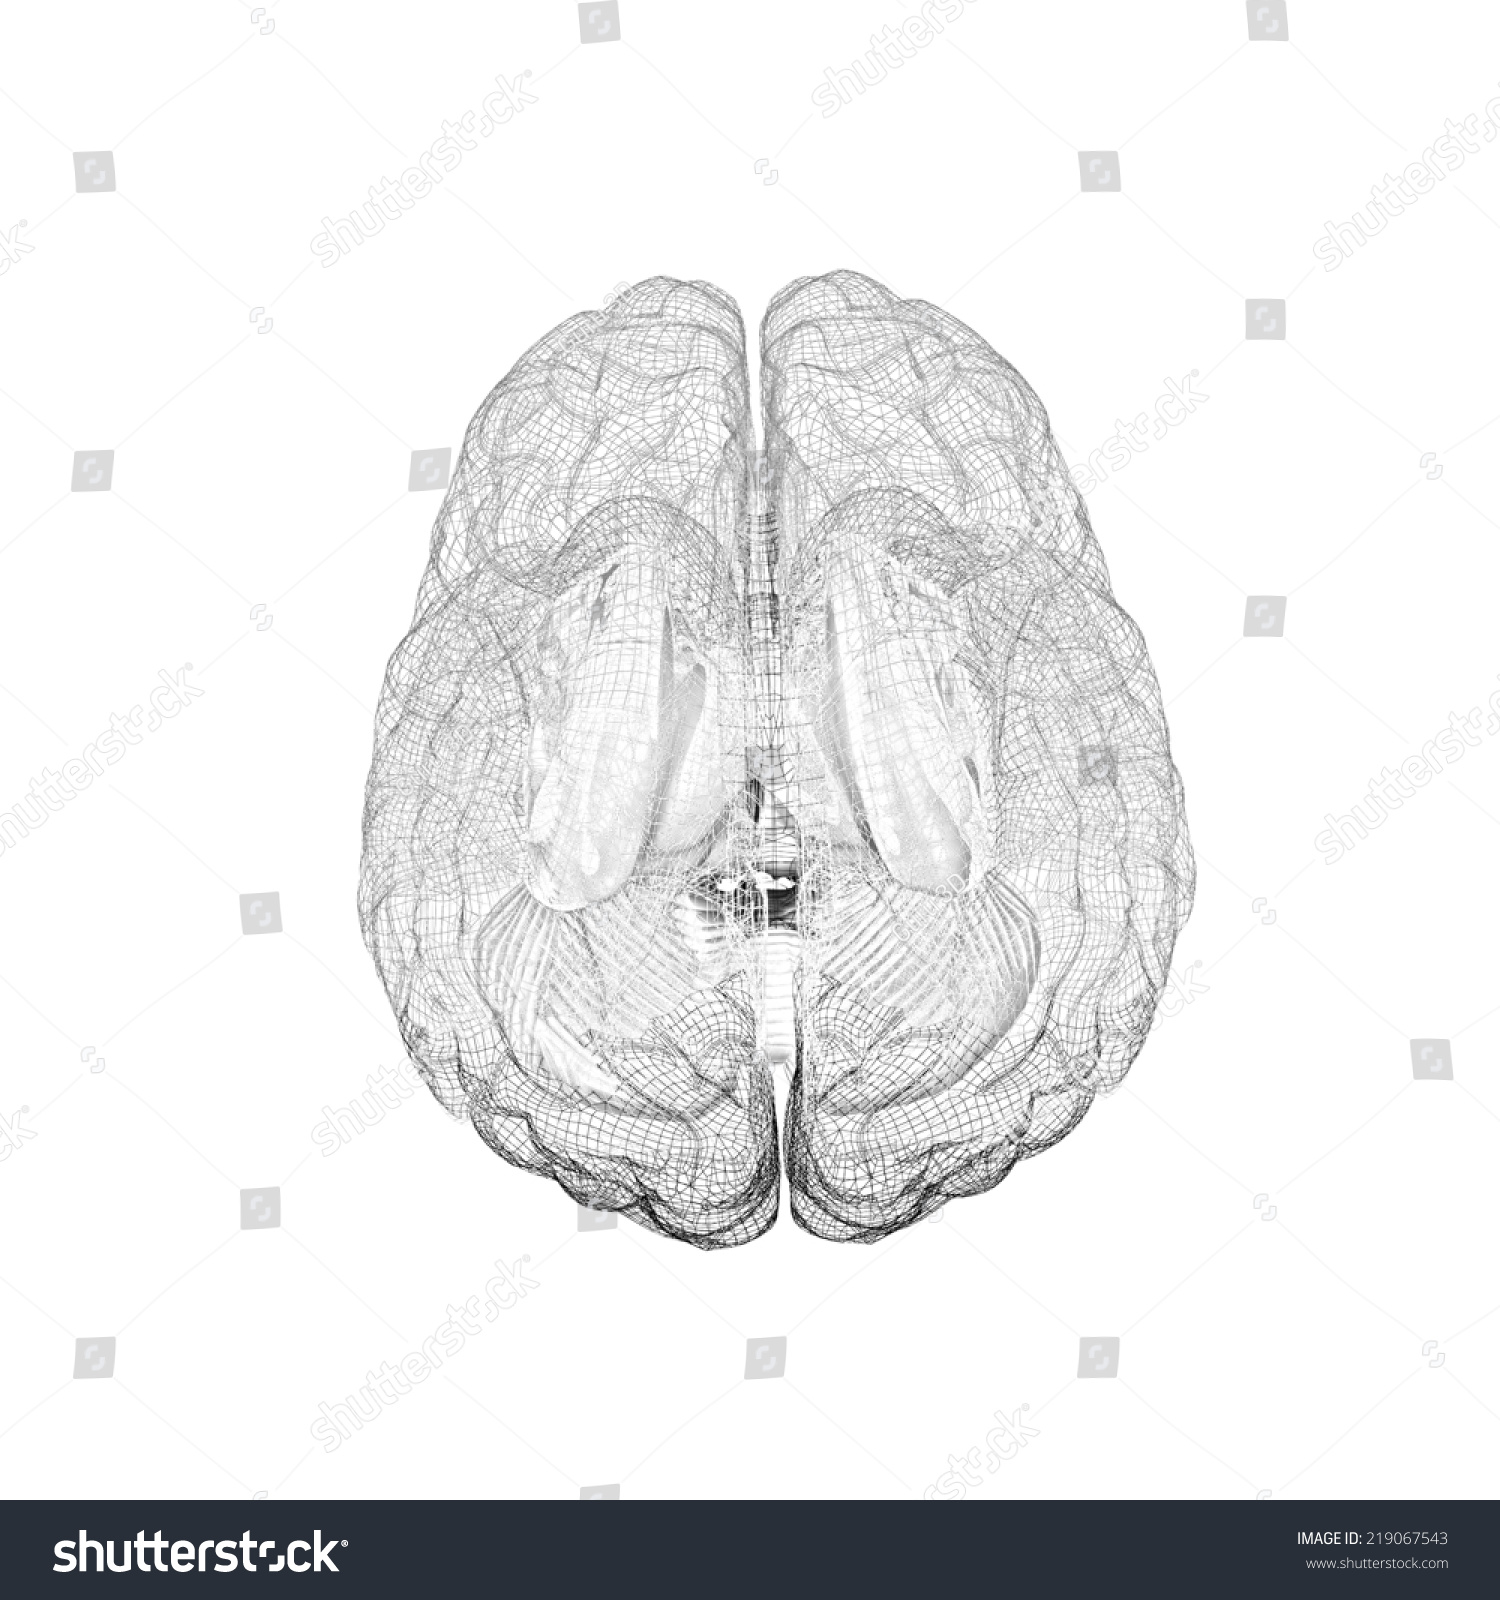 Creative Concept Of The Human Brain Pencil Drawing Ez Canvas